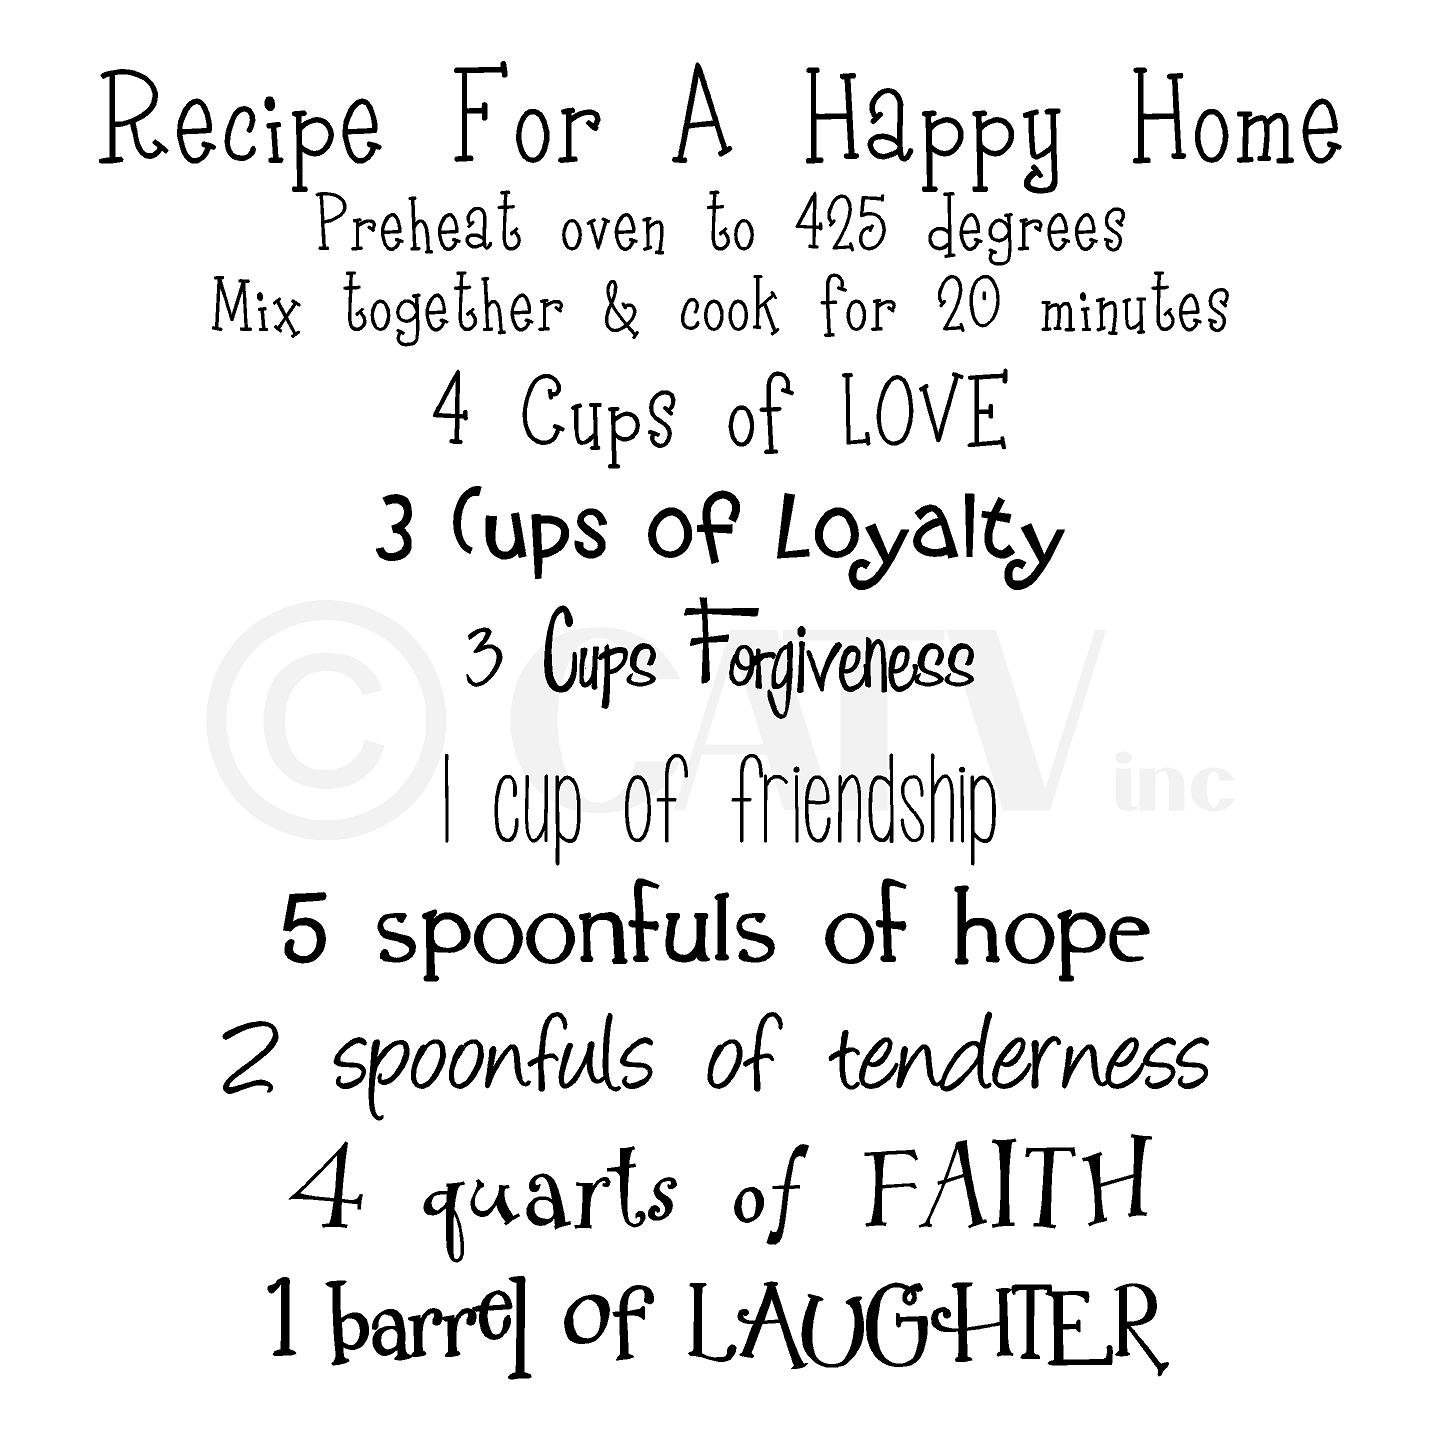 amazon com recipe for a happy home wall saying vinyl lettering amazon com recipe for a happy home wall saying vinyl lettering art decal quote sticker home decal home kitchen